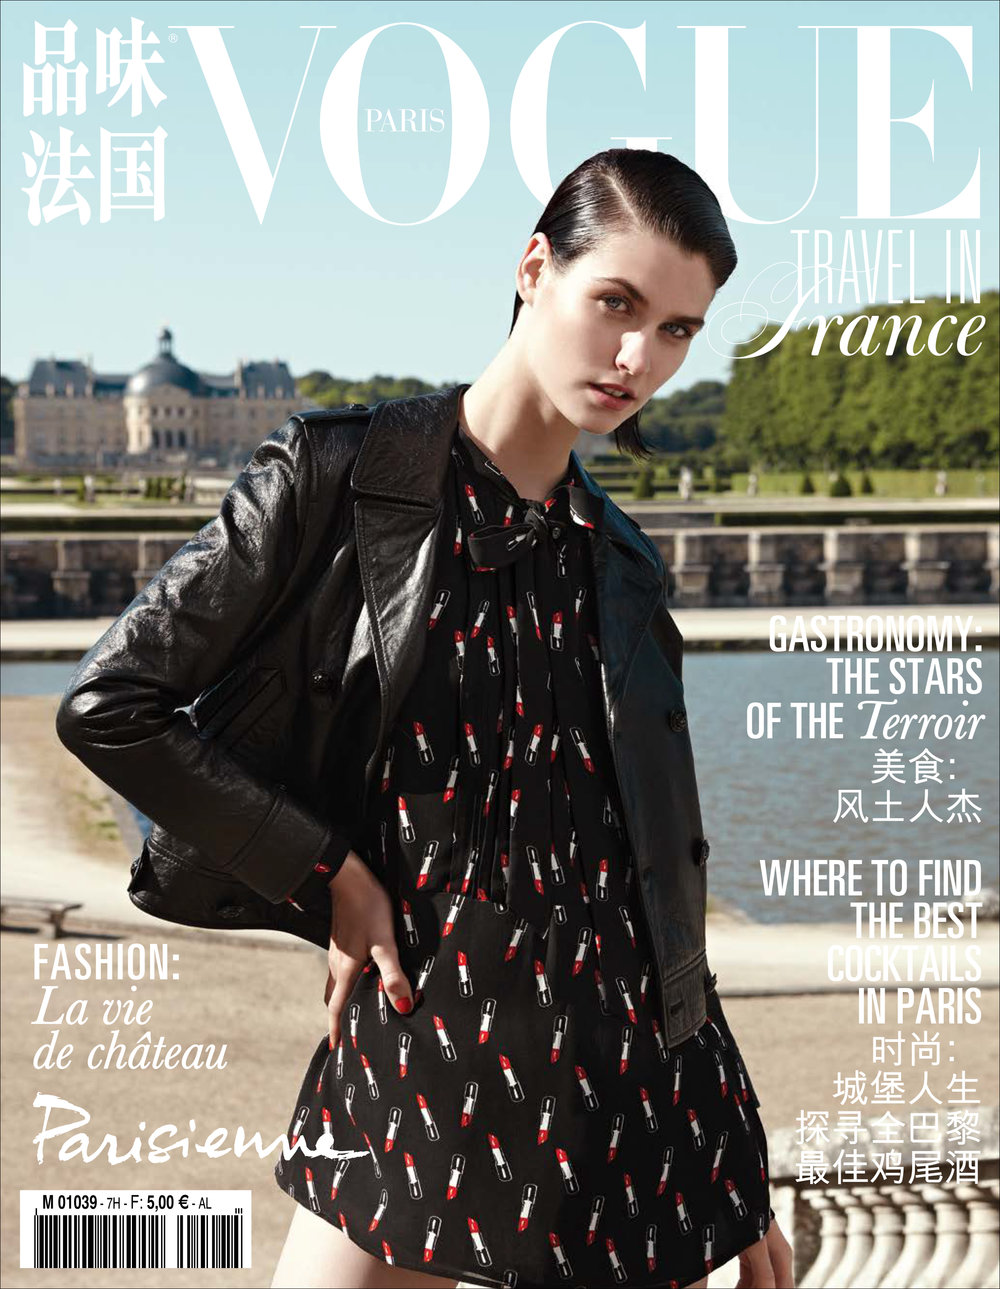 Vogue Travel in France - N°7 - October 2015 Photographer - Nagi Sakai Model - Manon Leloup